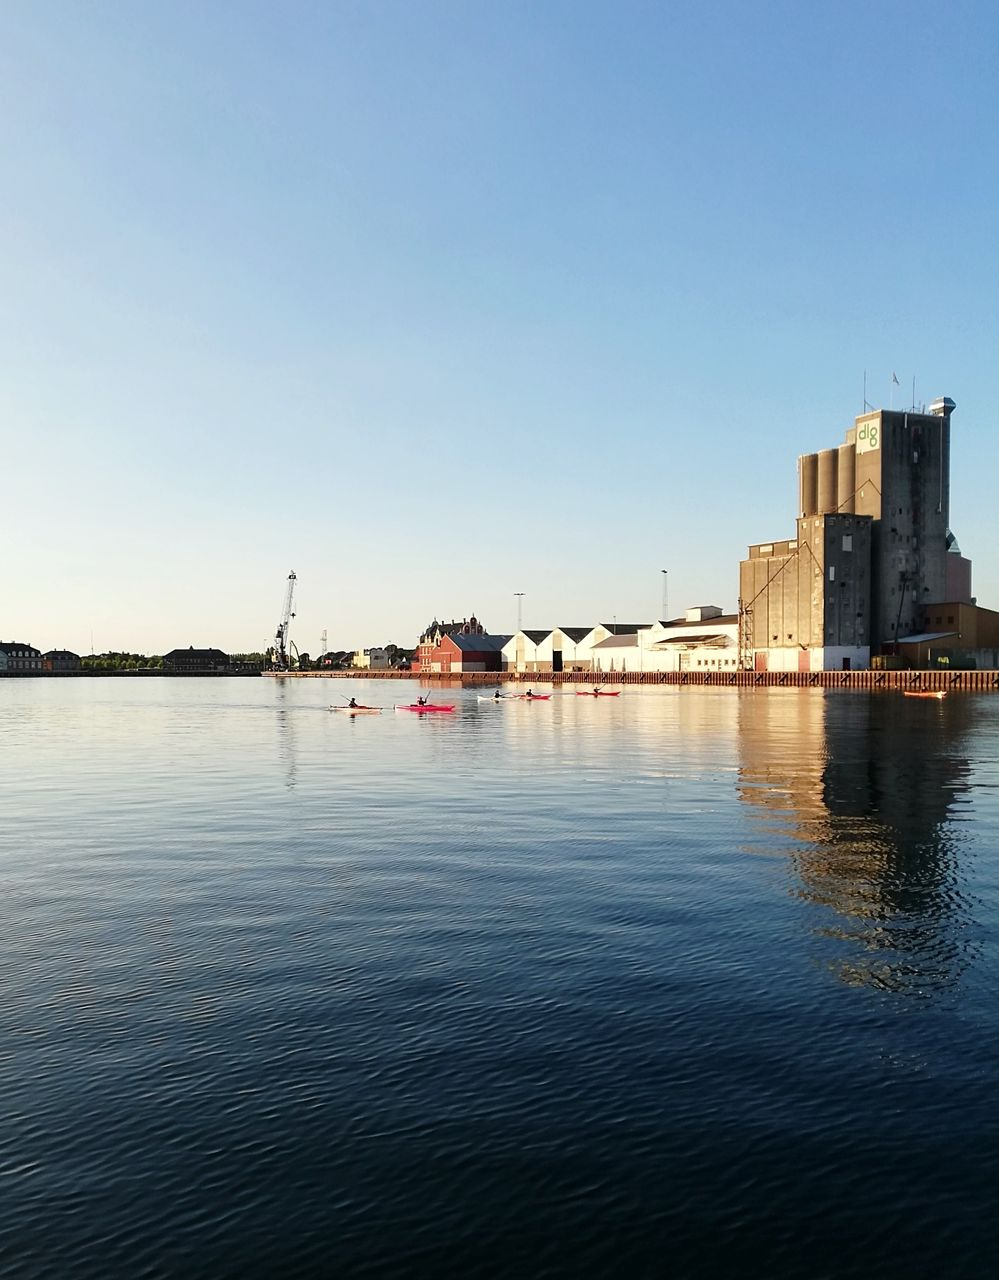 water, sky, architecture, waterfront, built structure, building exterior, clear sky, copy space, nature, no people, river, building, reflection, city, beauty in nature, day, blue, outdoors, transportation, marina